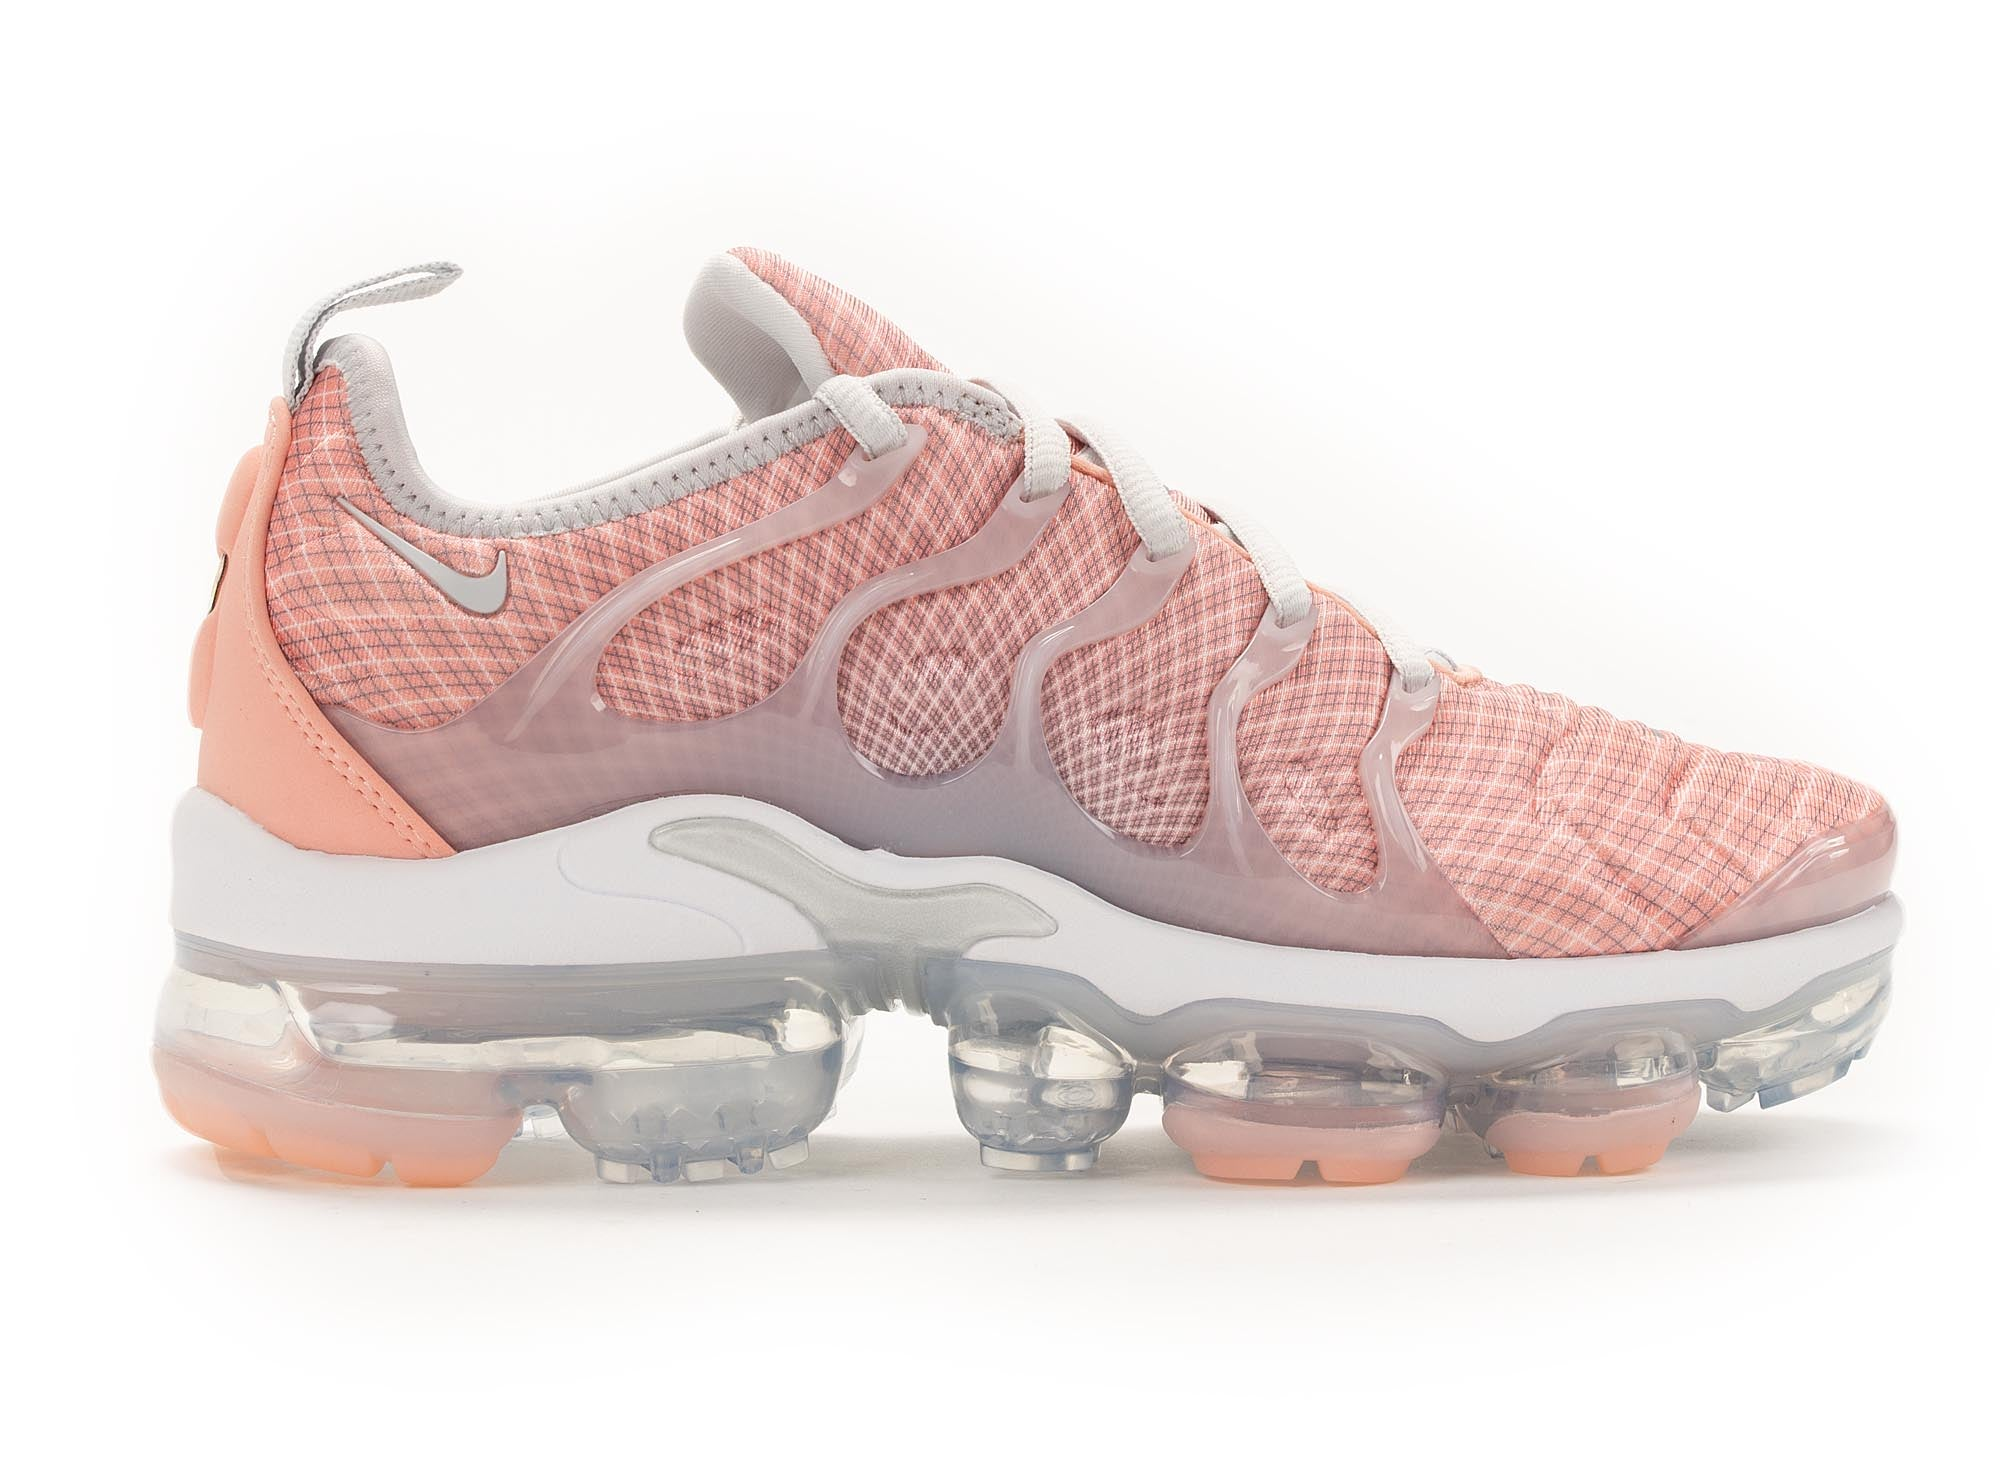 Nike Air Vapormax Plus Women's 'Bleached Coral'